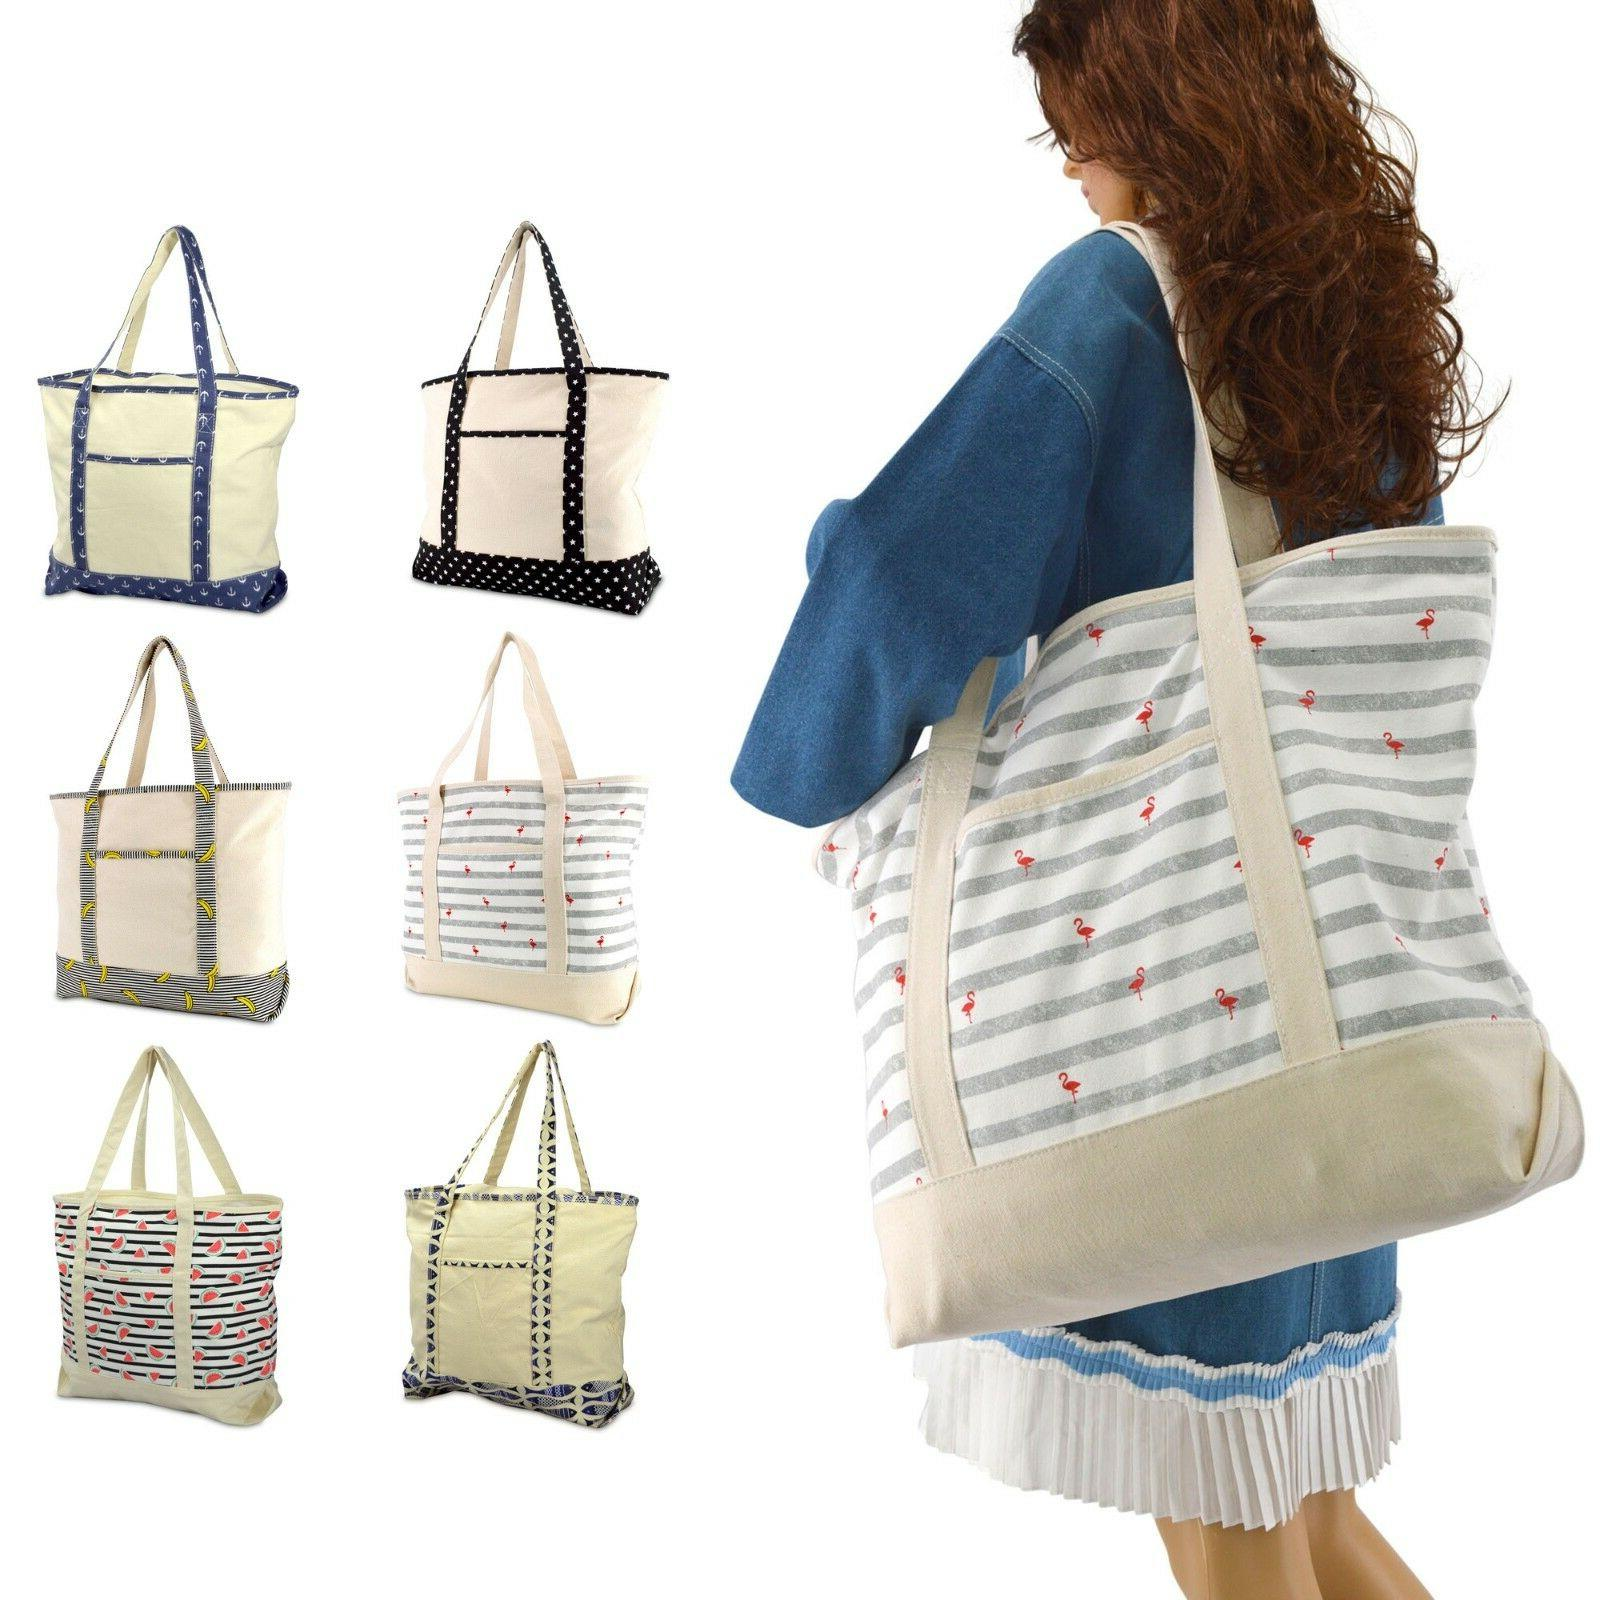 22 shopping tote bag in heavy cotton